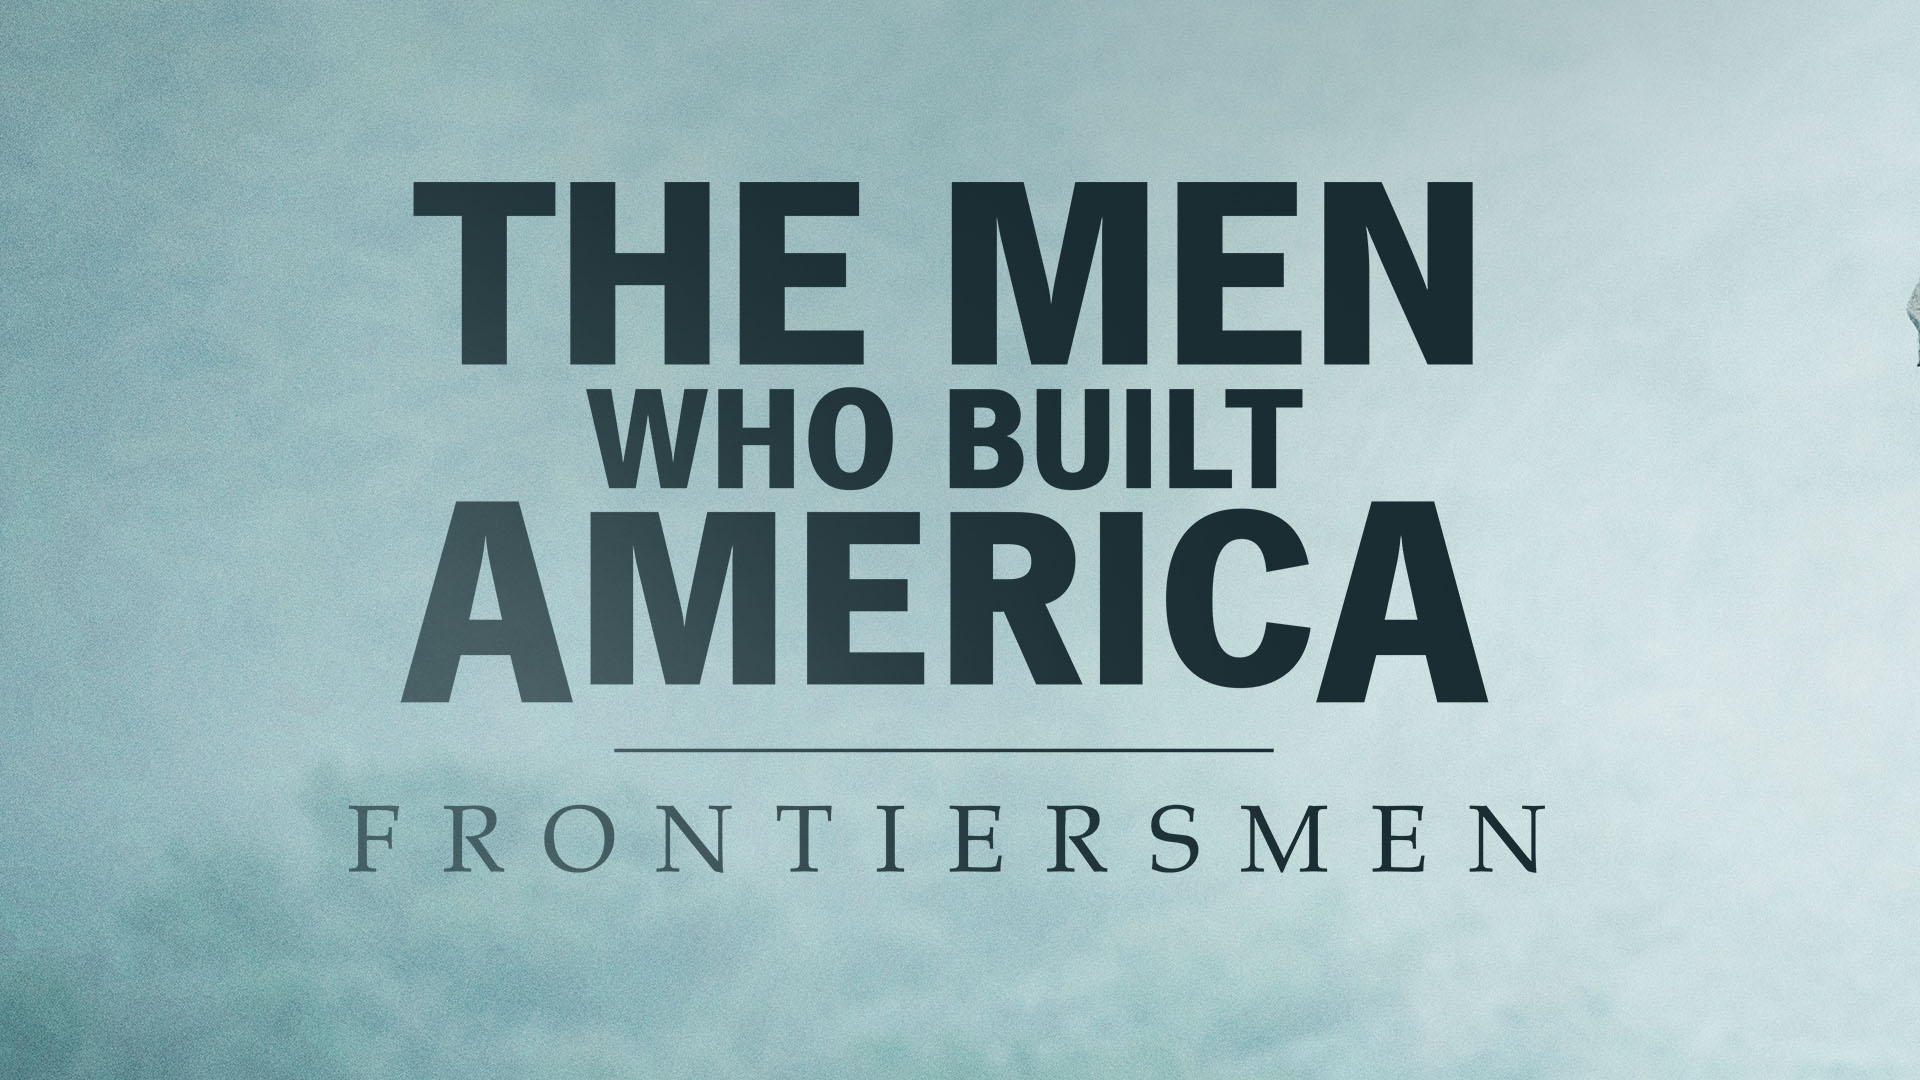 About The Men Who Built America Frontiersmen